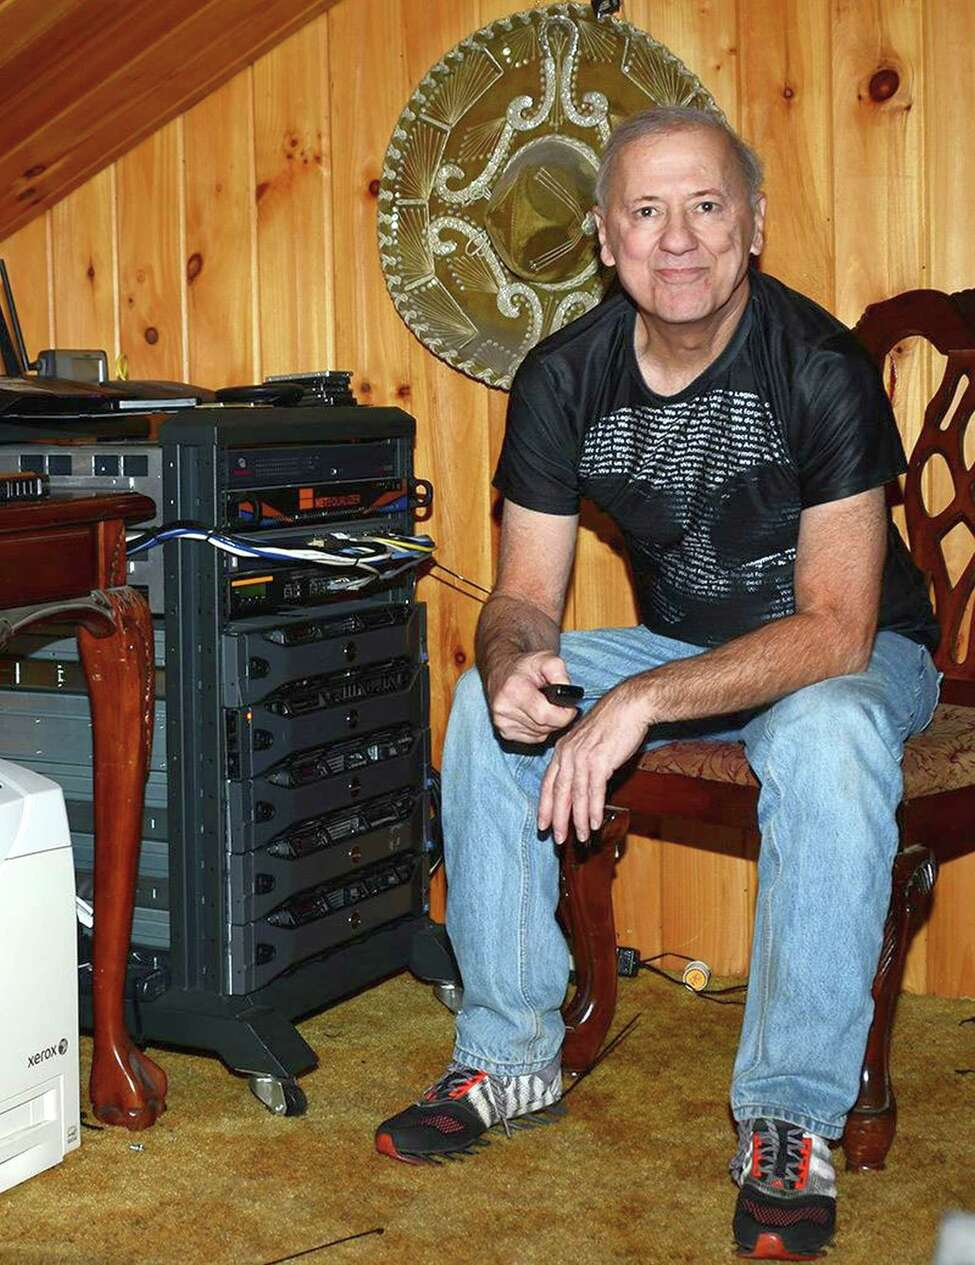 Tom Tryniski at home in Fulton, NY in his newspaper digitization nerve center, which dominates his livingroom.